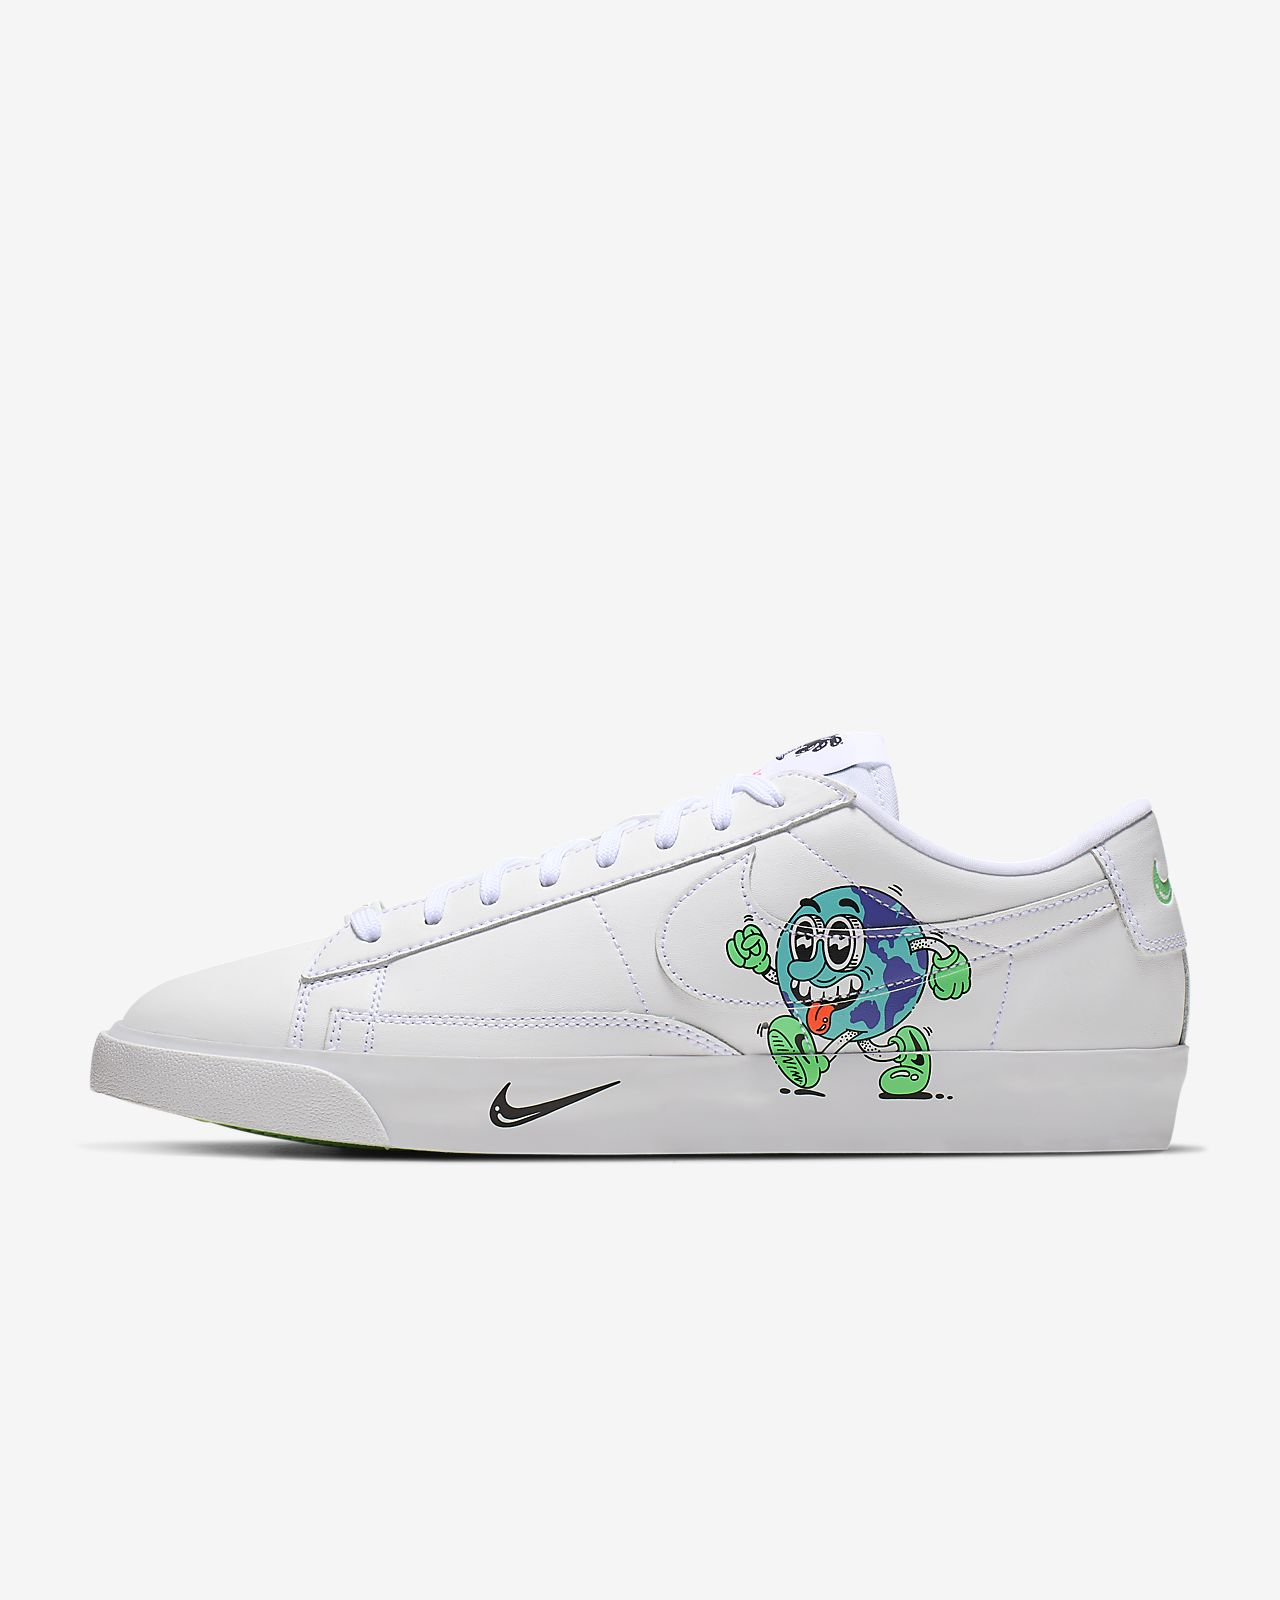 f1813aea5595 Men s Shoe. Nike Blazer Low QS Flyleather with at least 50% leather fibre